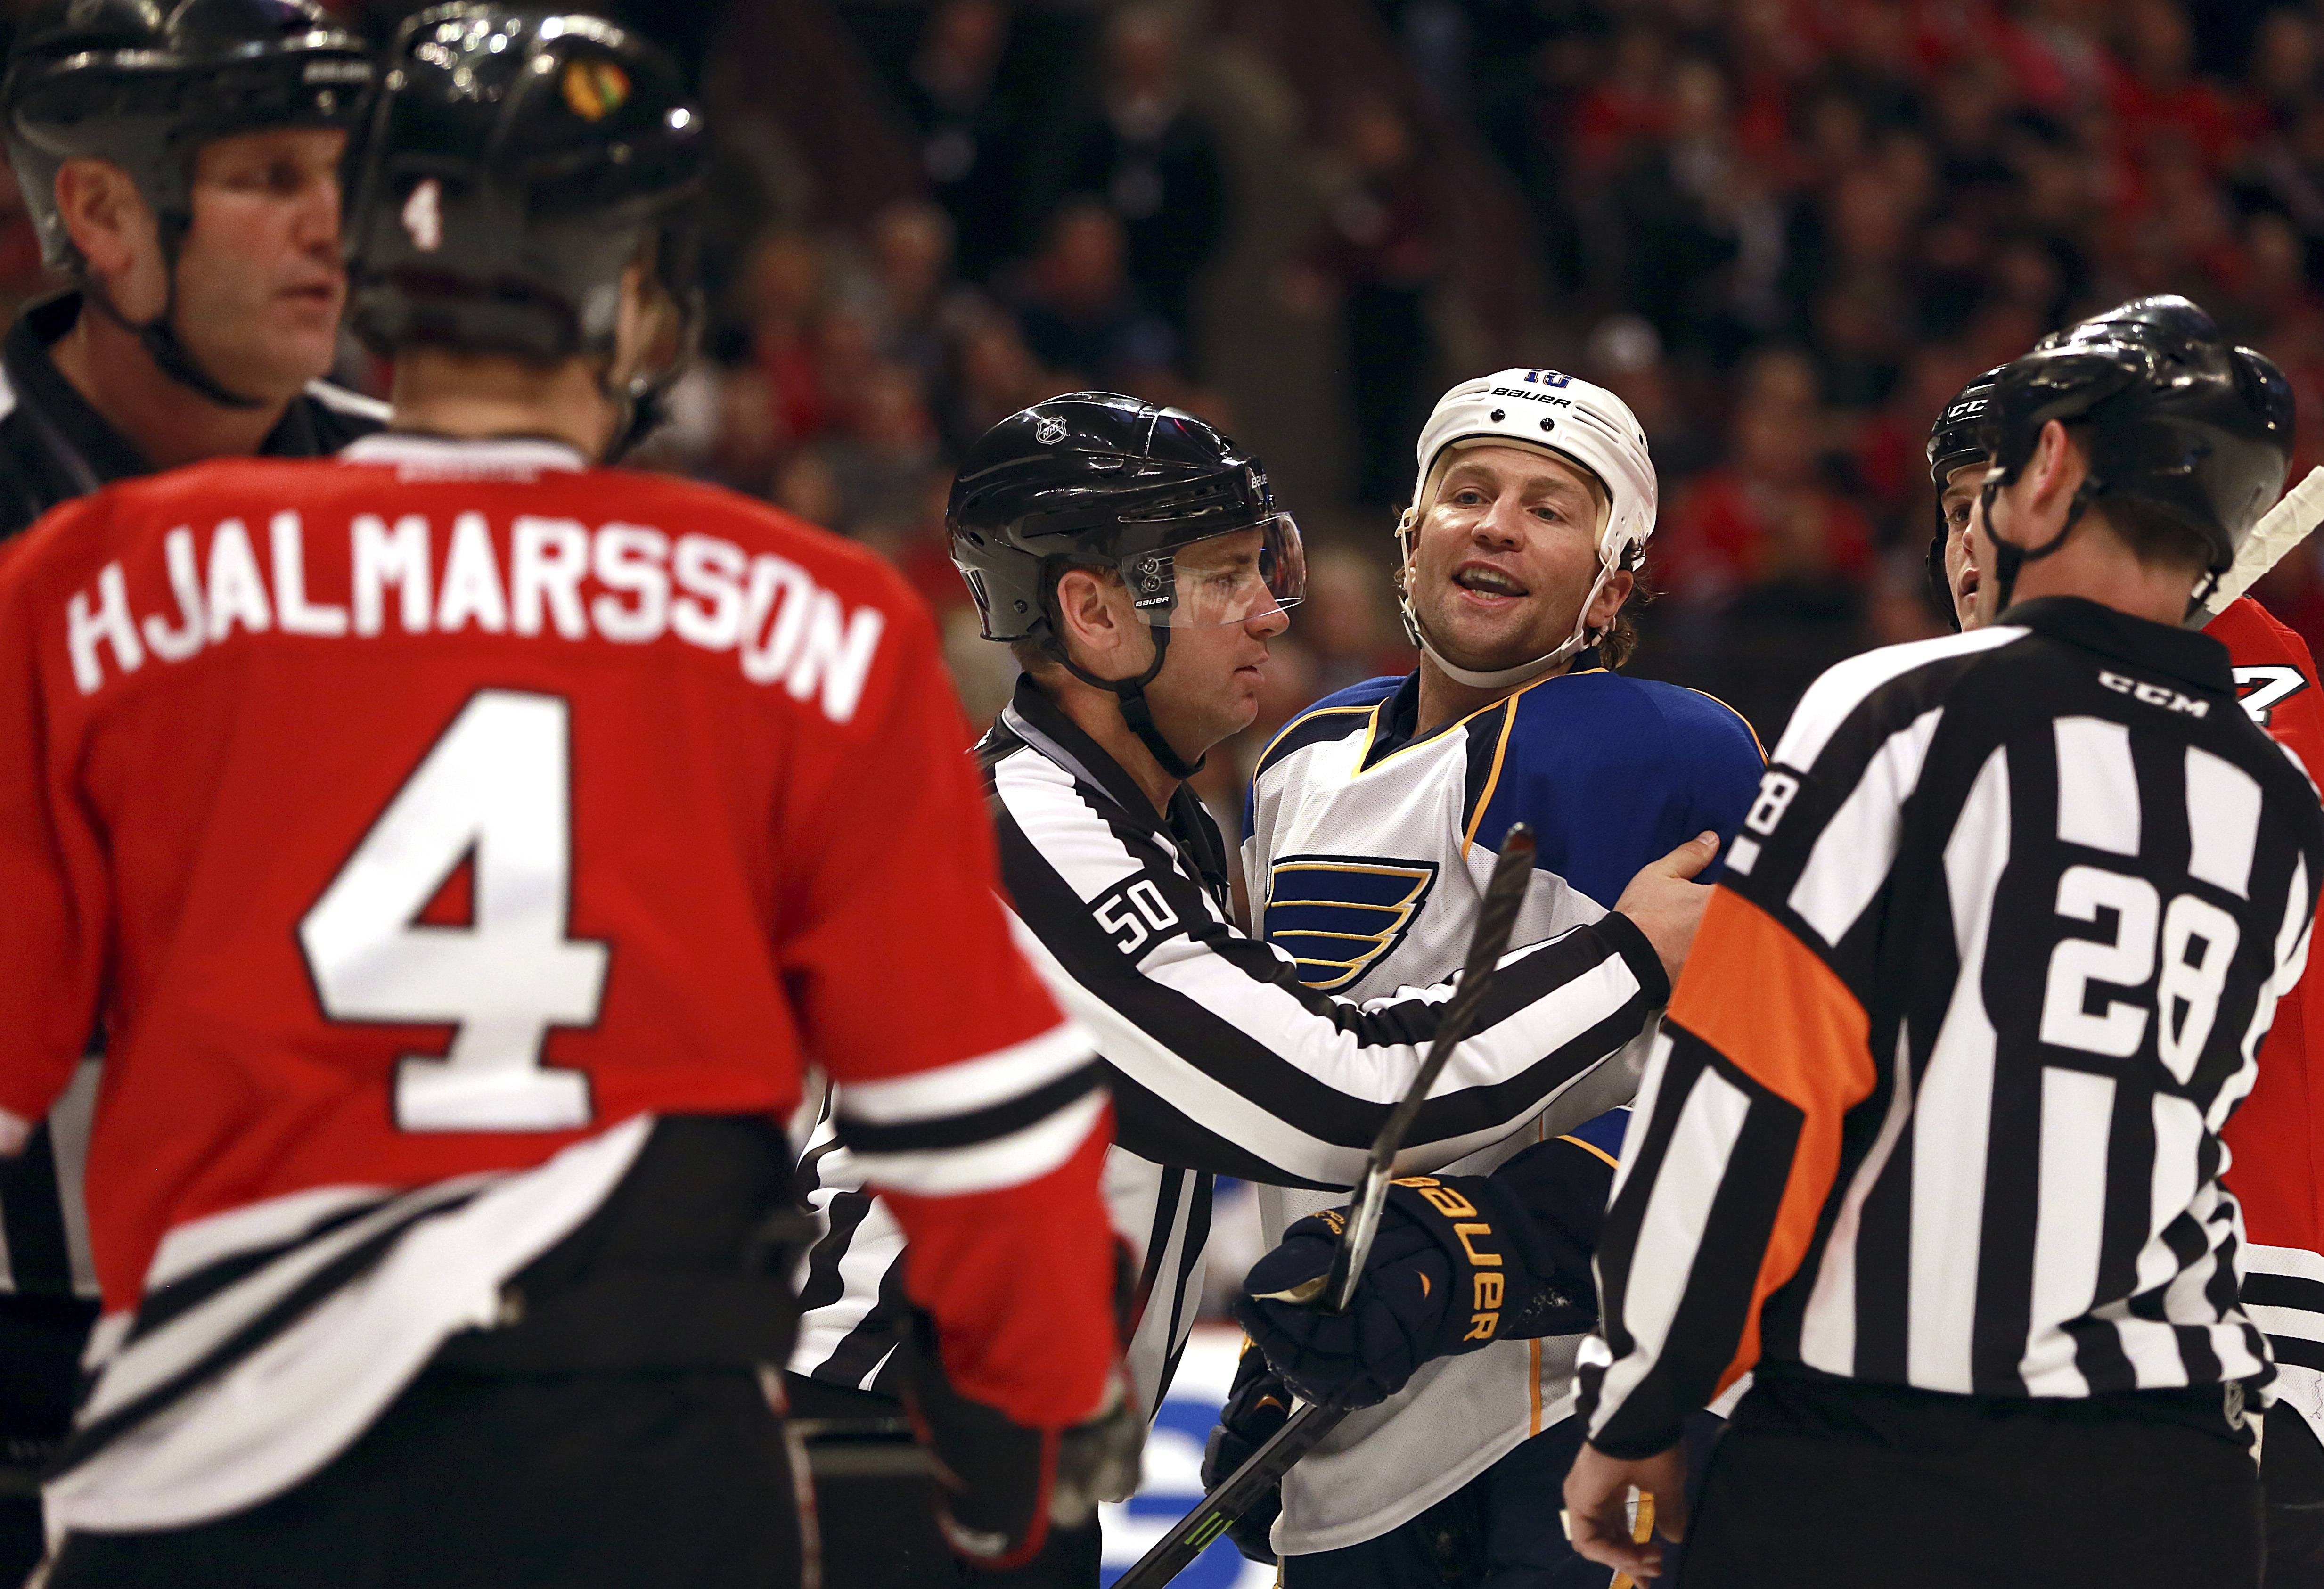 Blackhawks' Niklas Hjalmarsson (4) and St Louis Blues' Brenden Morrow, center right, get separated during the first period of an NHL hockey game in Chicago on Sunday, April 6, 2014.